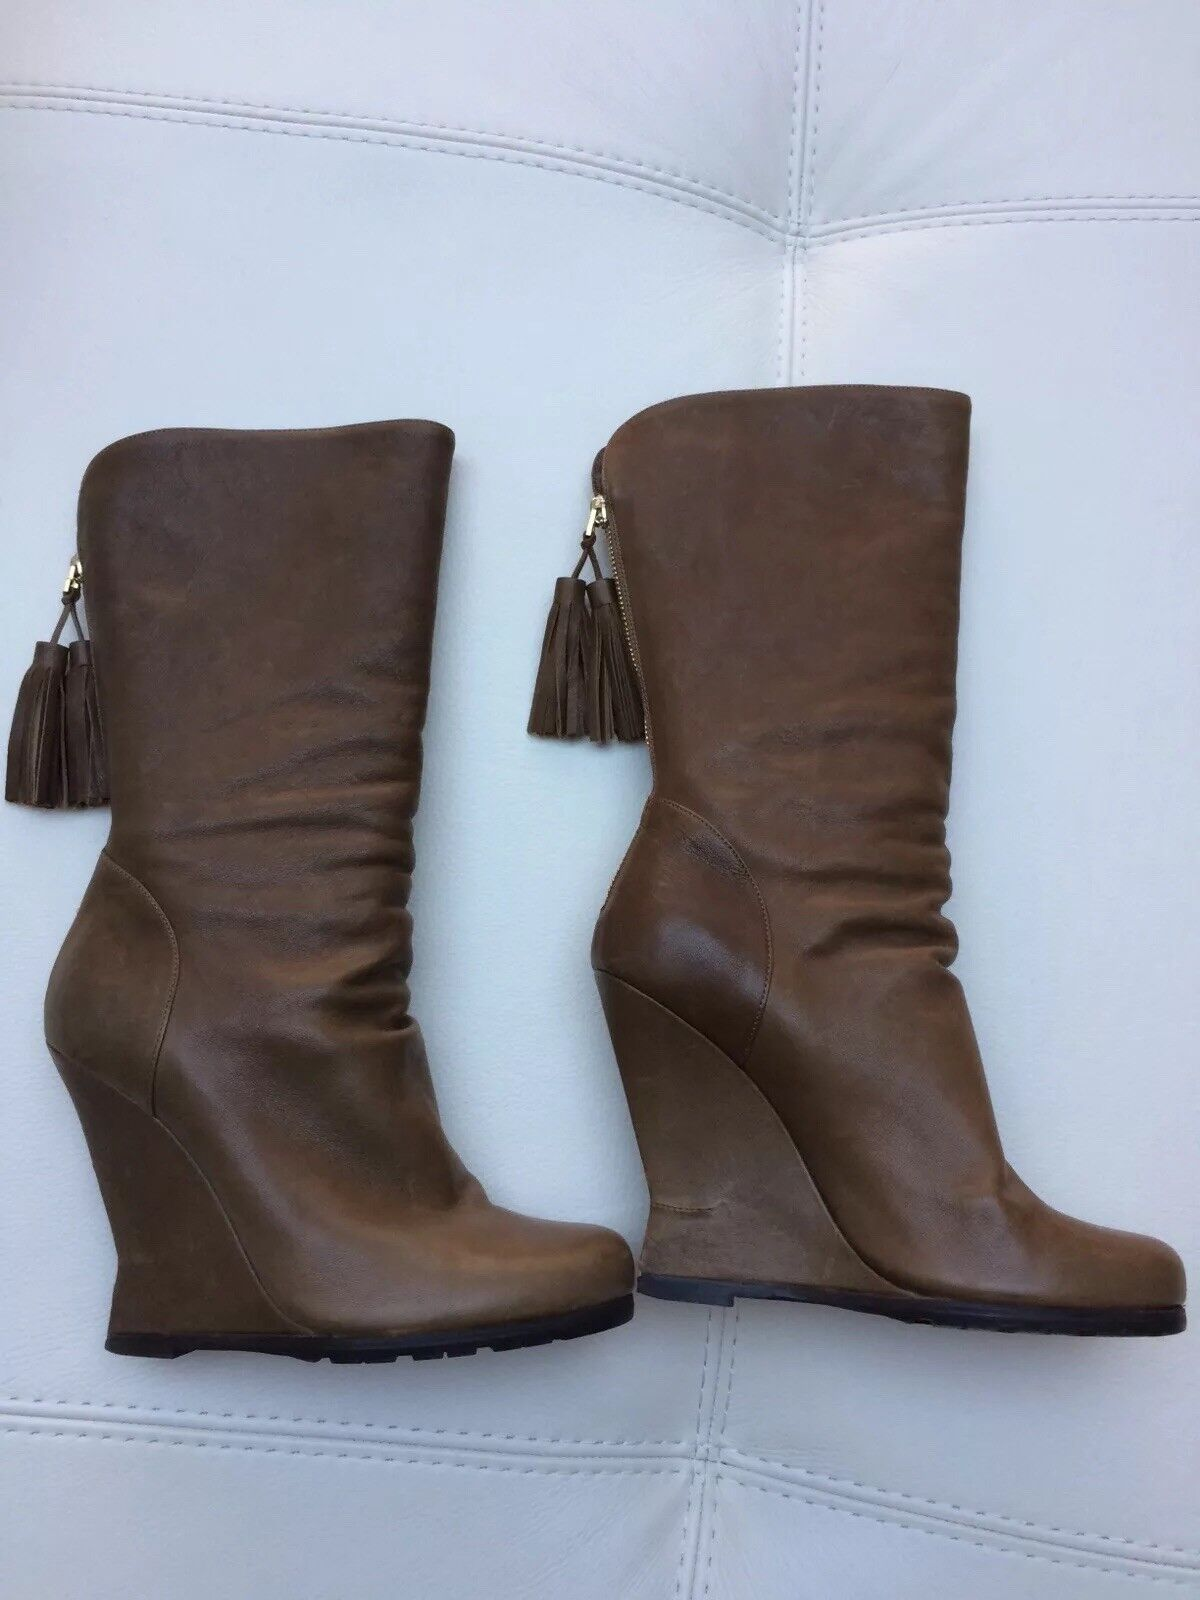 YSL Brown Mid Calf Boots Sz 5 UK nearly New